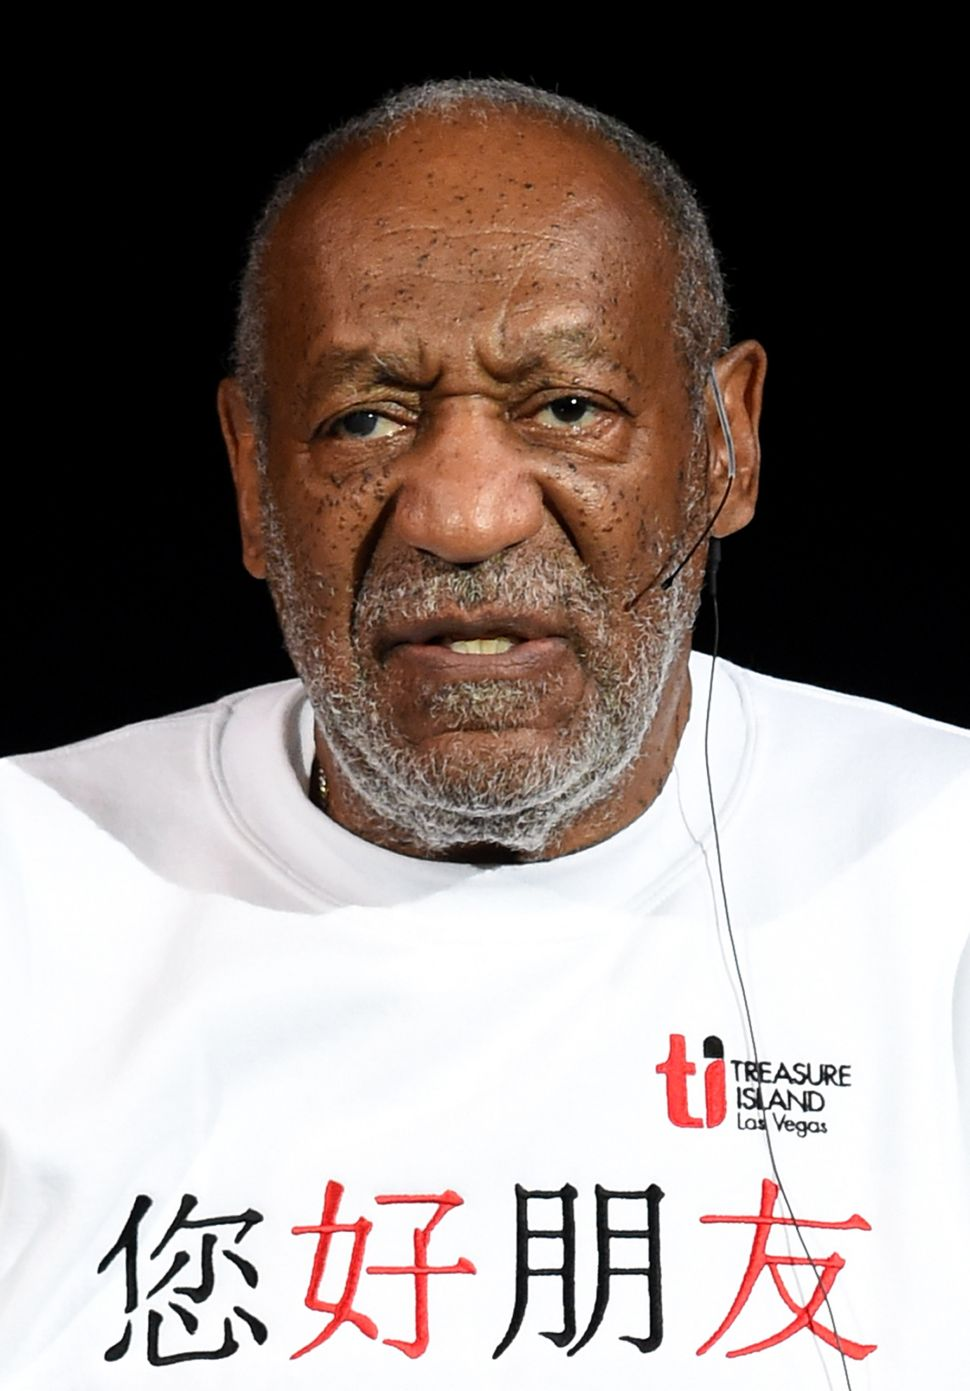 Even Without Formal Charges, NBC and Netflix are Right to Cancel Bill Cosby Projects